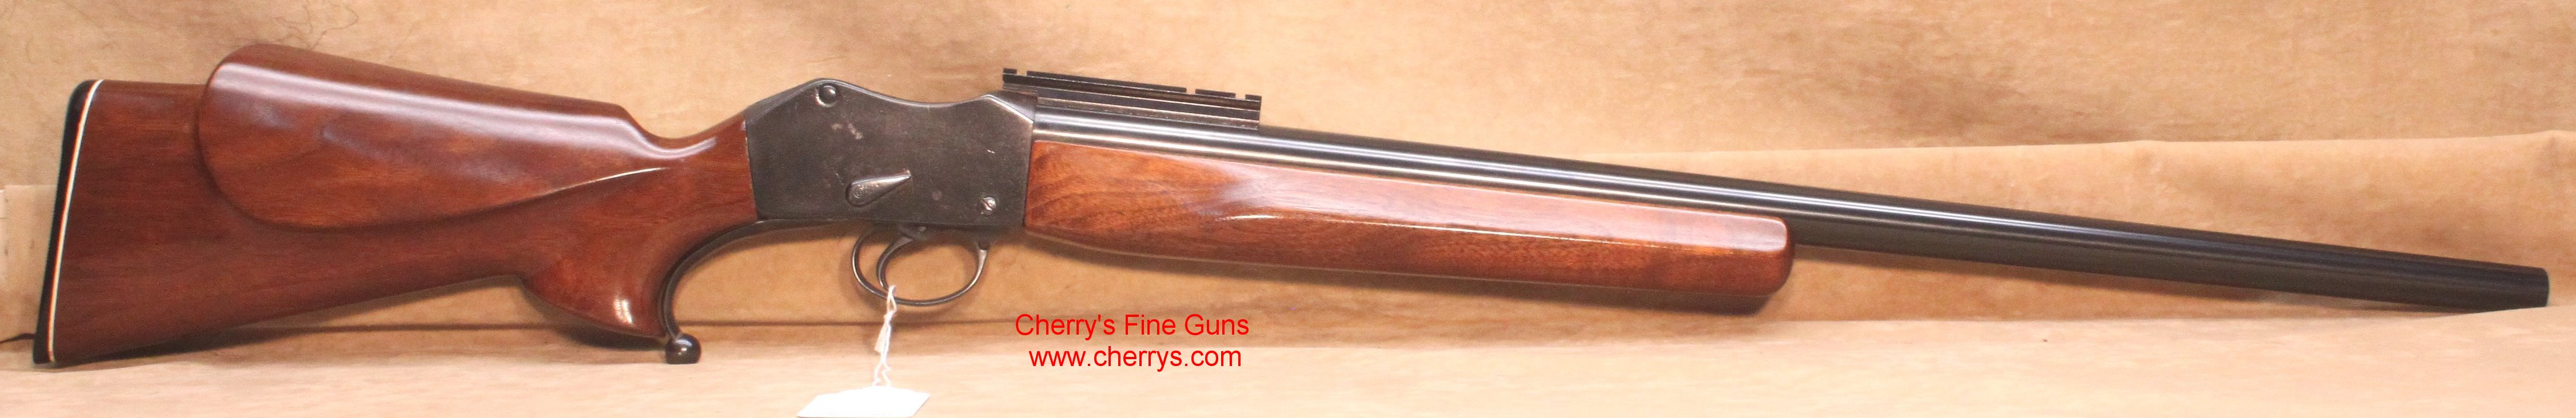 Cherry's Long Gun Inventory Page